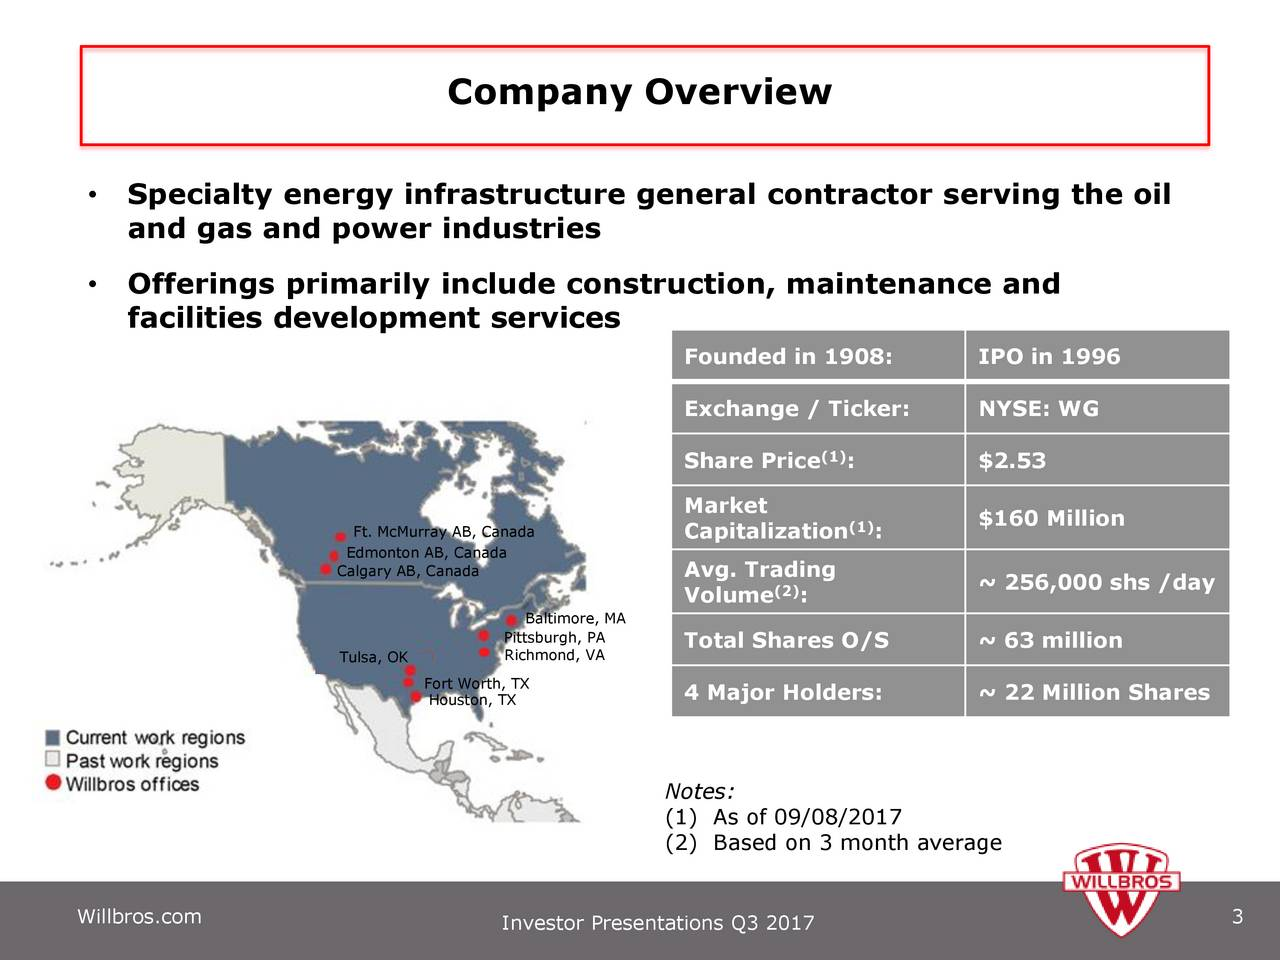 Specialty energy infrastructure general contractor serving the oil and gas and power industries Offerings primarily include construction, maintenance and facilities development services Founded in 1908: IPO in 1996 Exchange / Ticker: NYSE: WG Share Price (1): $2.53 Market Ft. McMurray AB, Canada Capitalization (1: $160 Million Edmonton AB, Canada Calgary AB, Canada Avg. Trading (2) ~ 256,000 shs /day Volume : Pittsburgh, PAA Tulsa, OK Richmond, VA Total Shares O/S ~ 63 million Fort Worth, TX 4 Major Holders: ~ 22 Million Shares Houston, TX Notes: (1) As of 09/08/2017 (2) Based on 3 month average Willbros.com 3 Investor Presentations Q3 2017